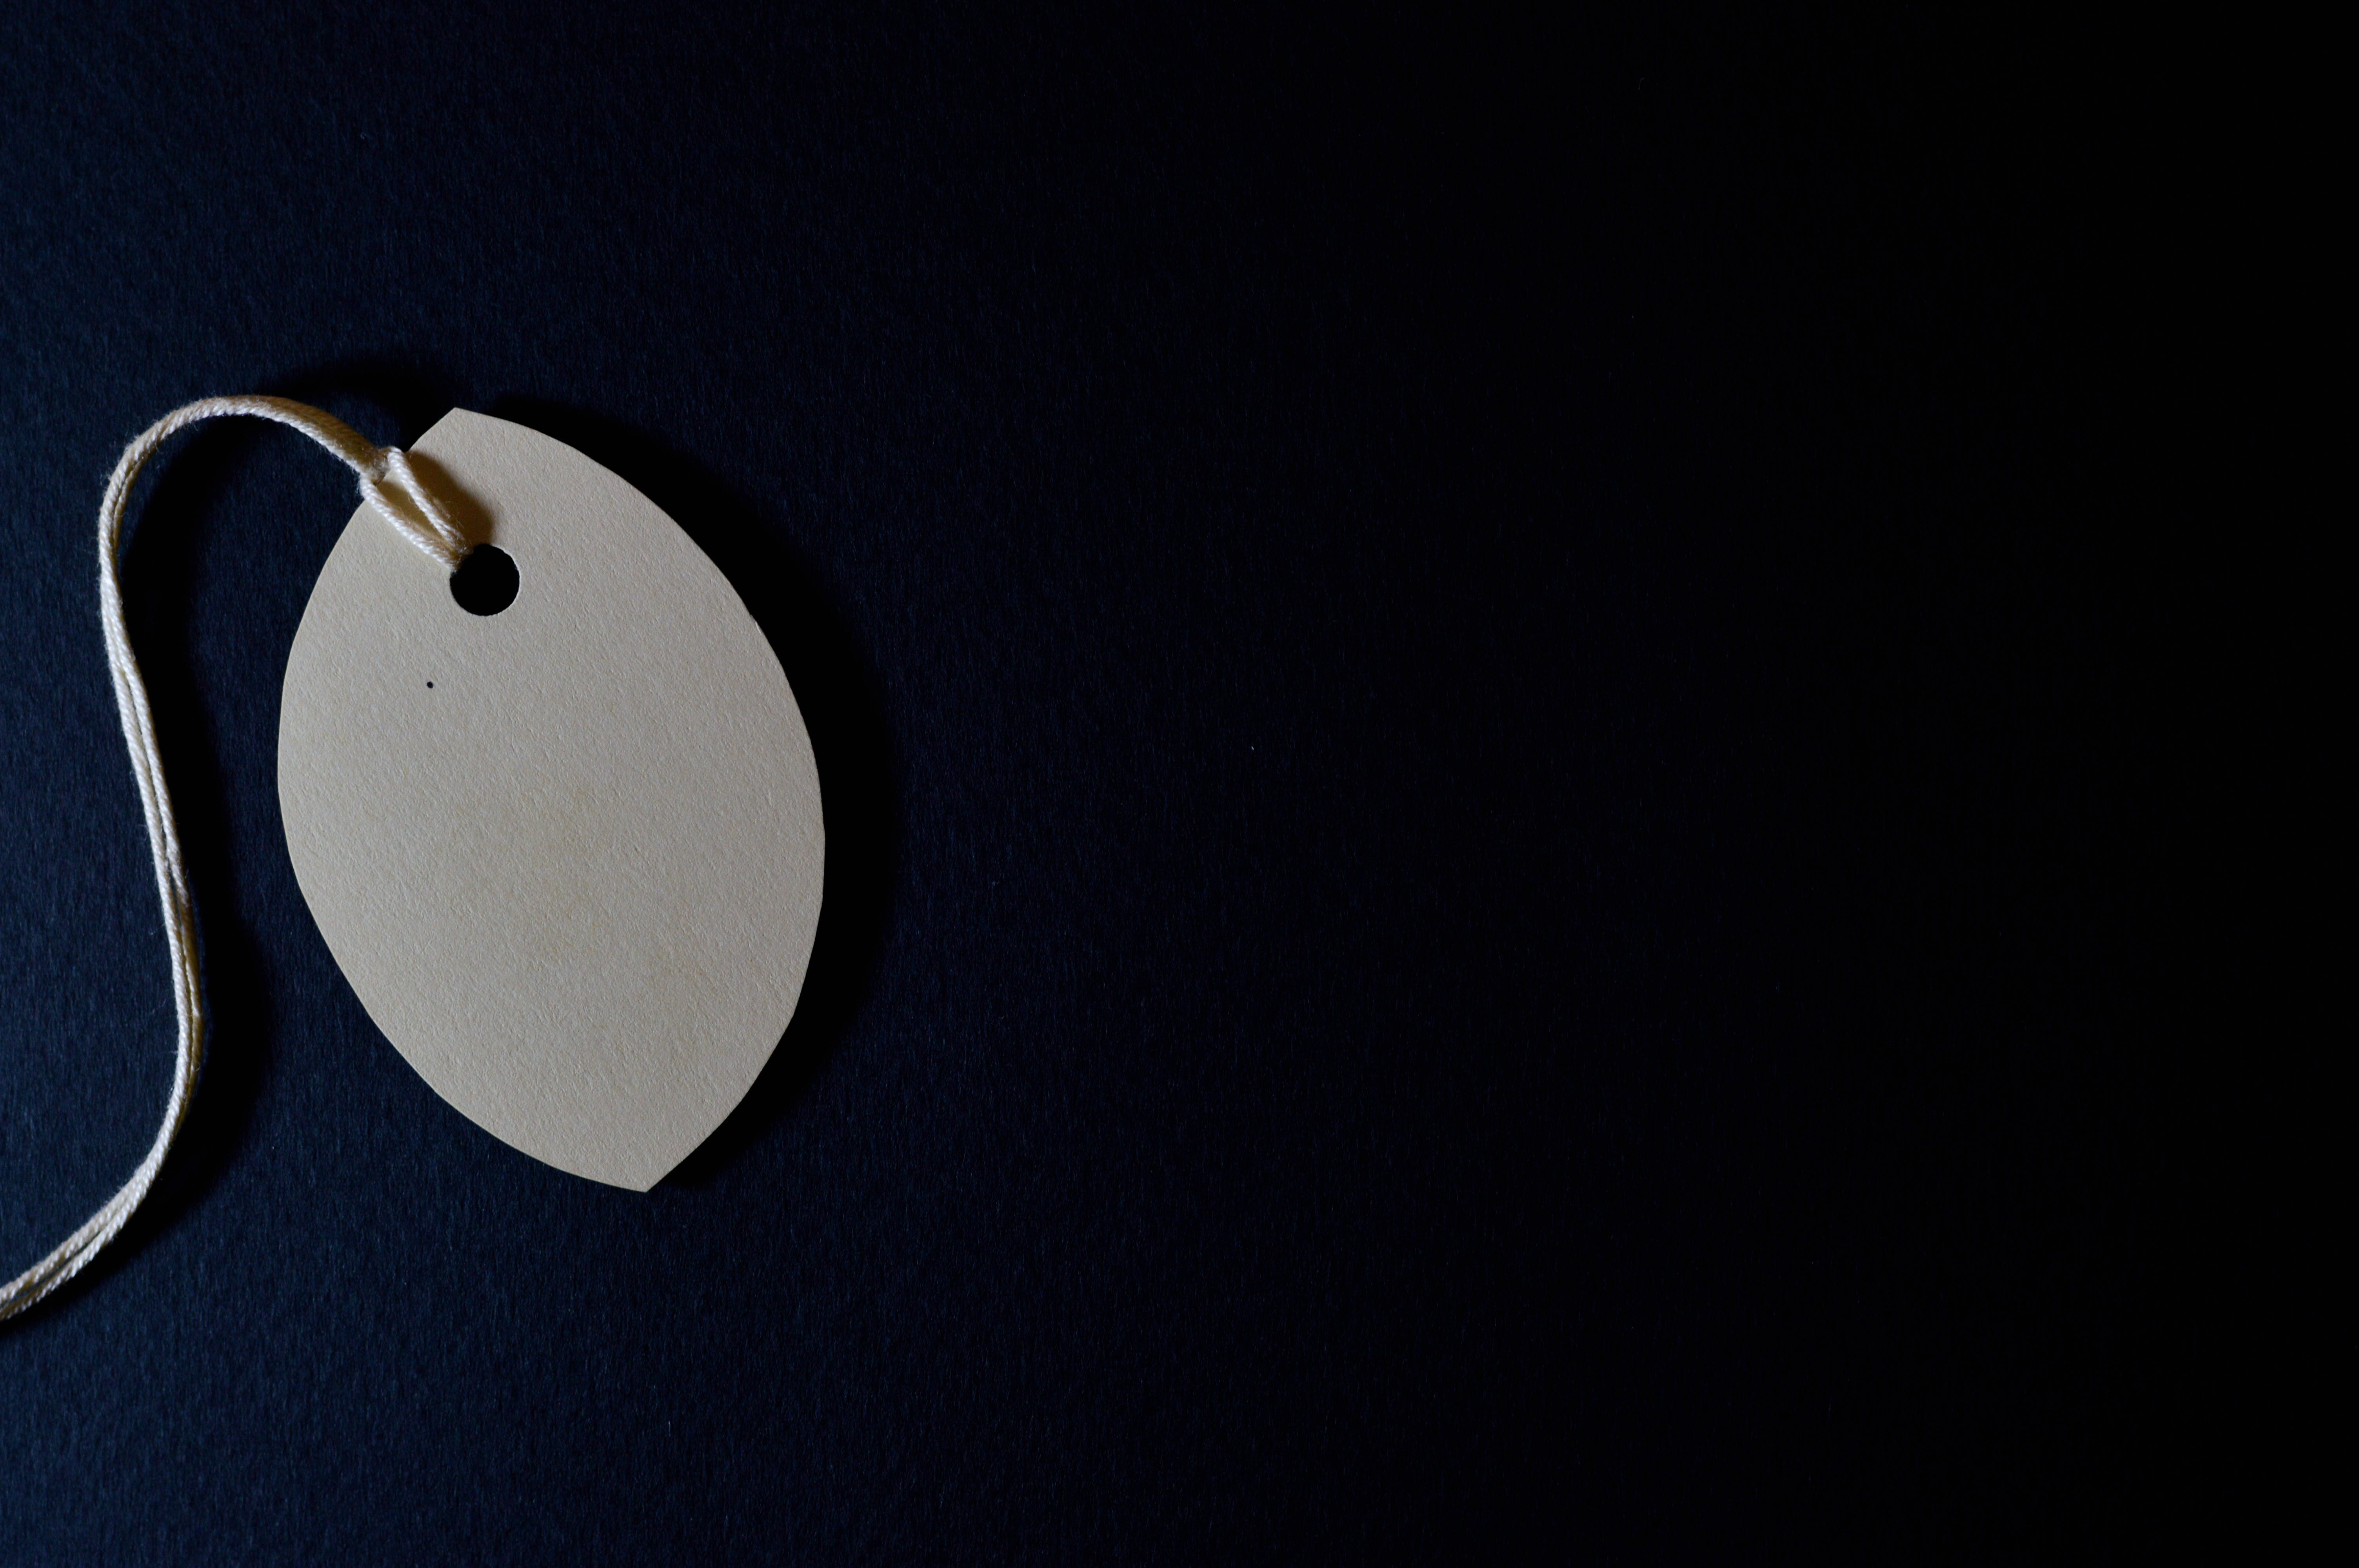 White Tag With String and Black Background